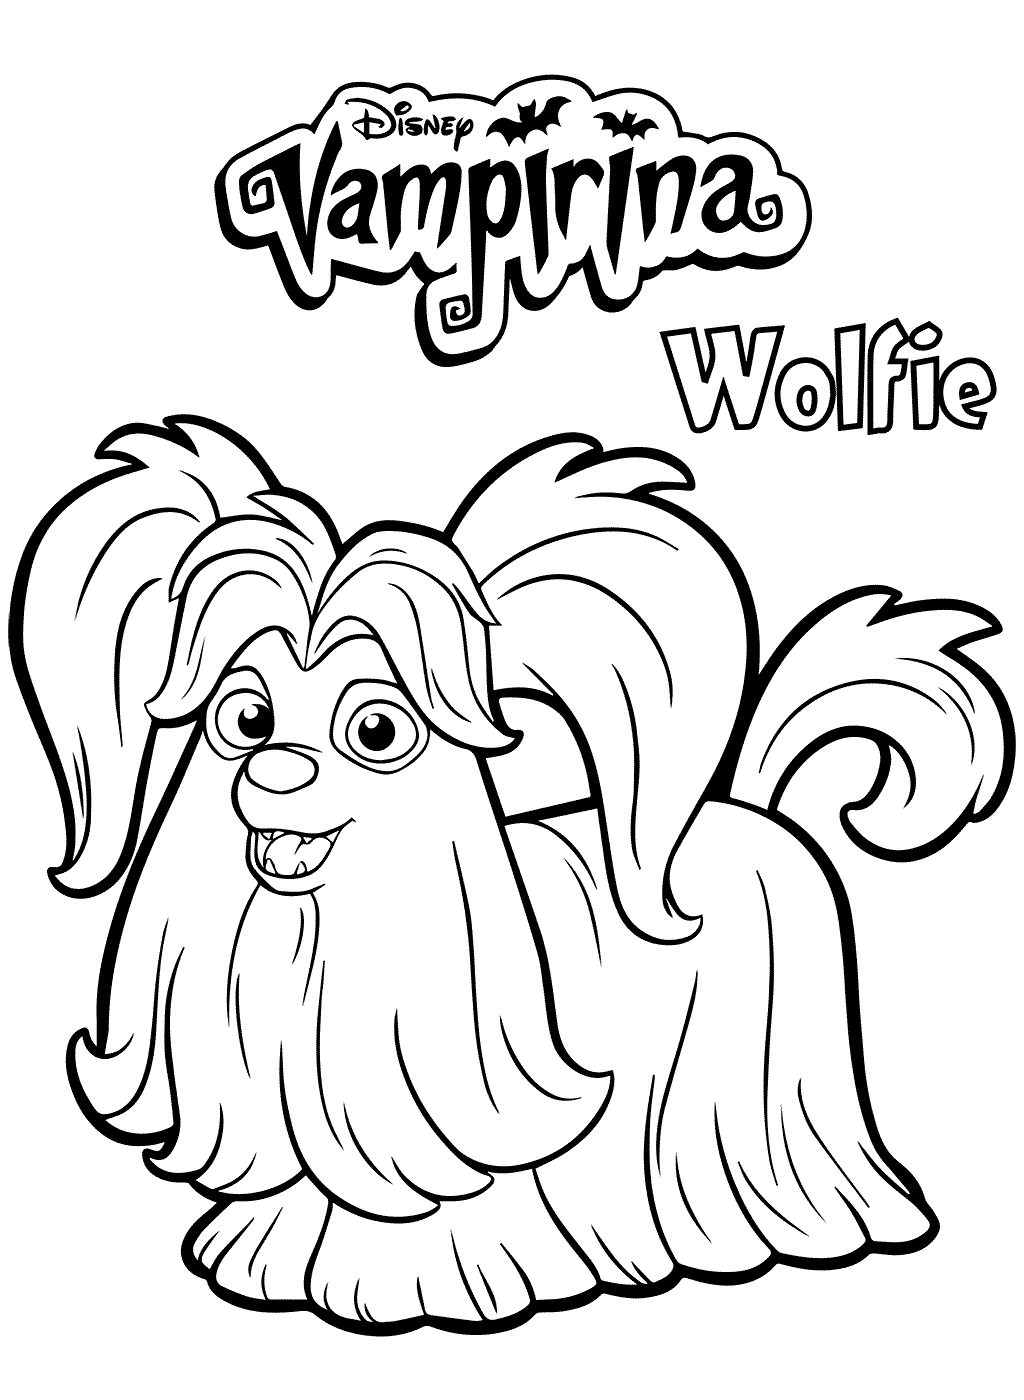 Wolfie Vampirina Coloring Pages